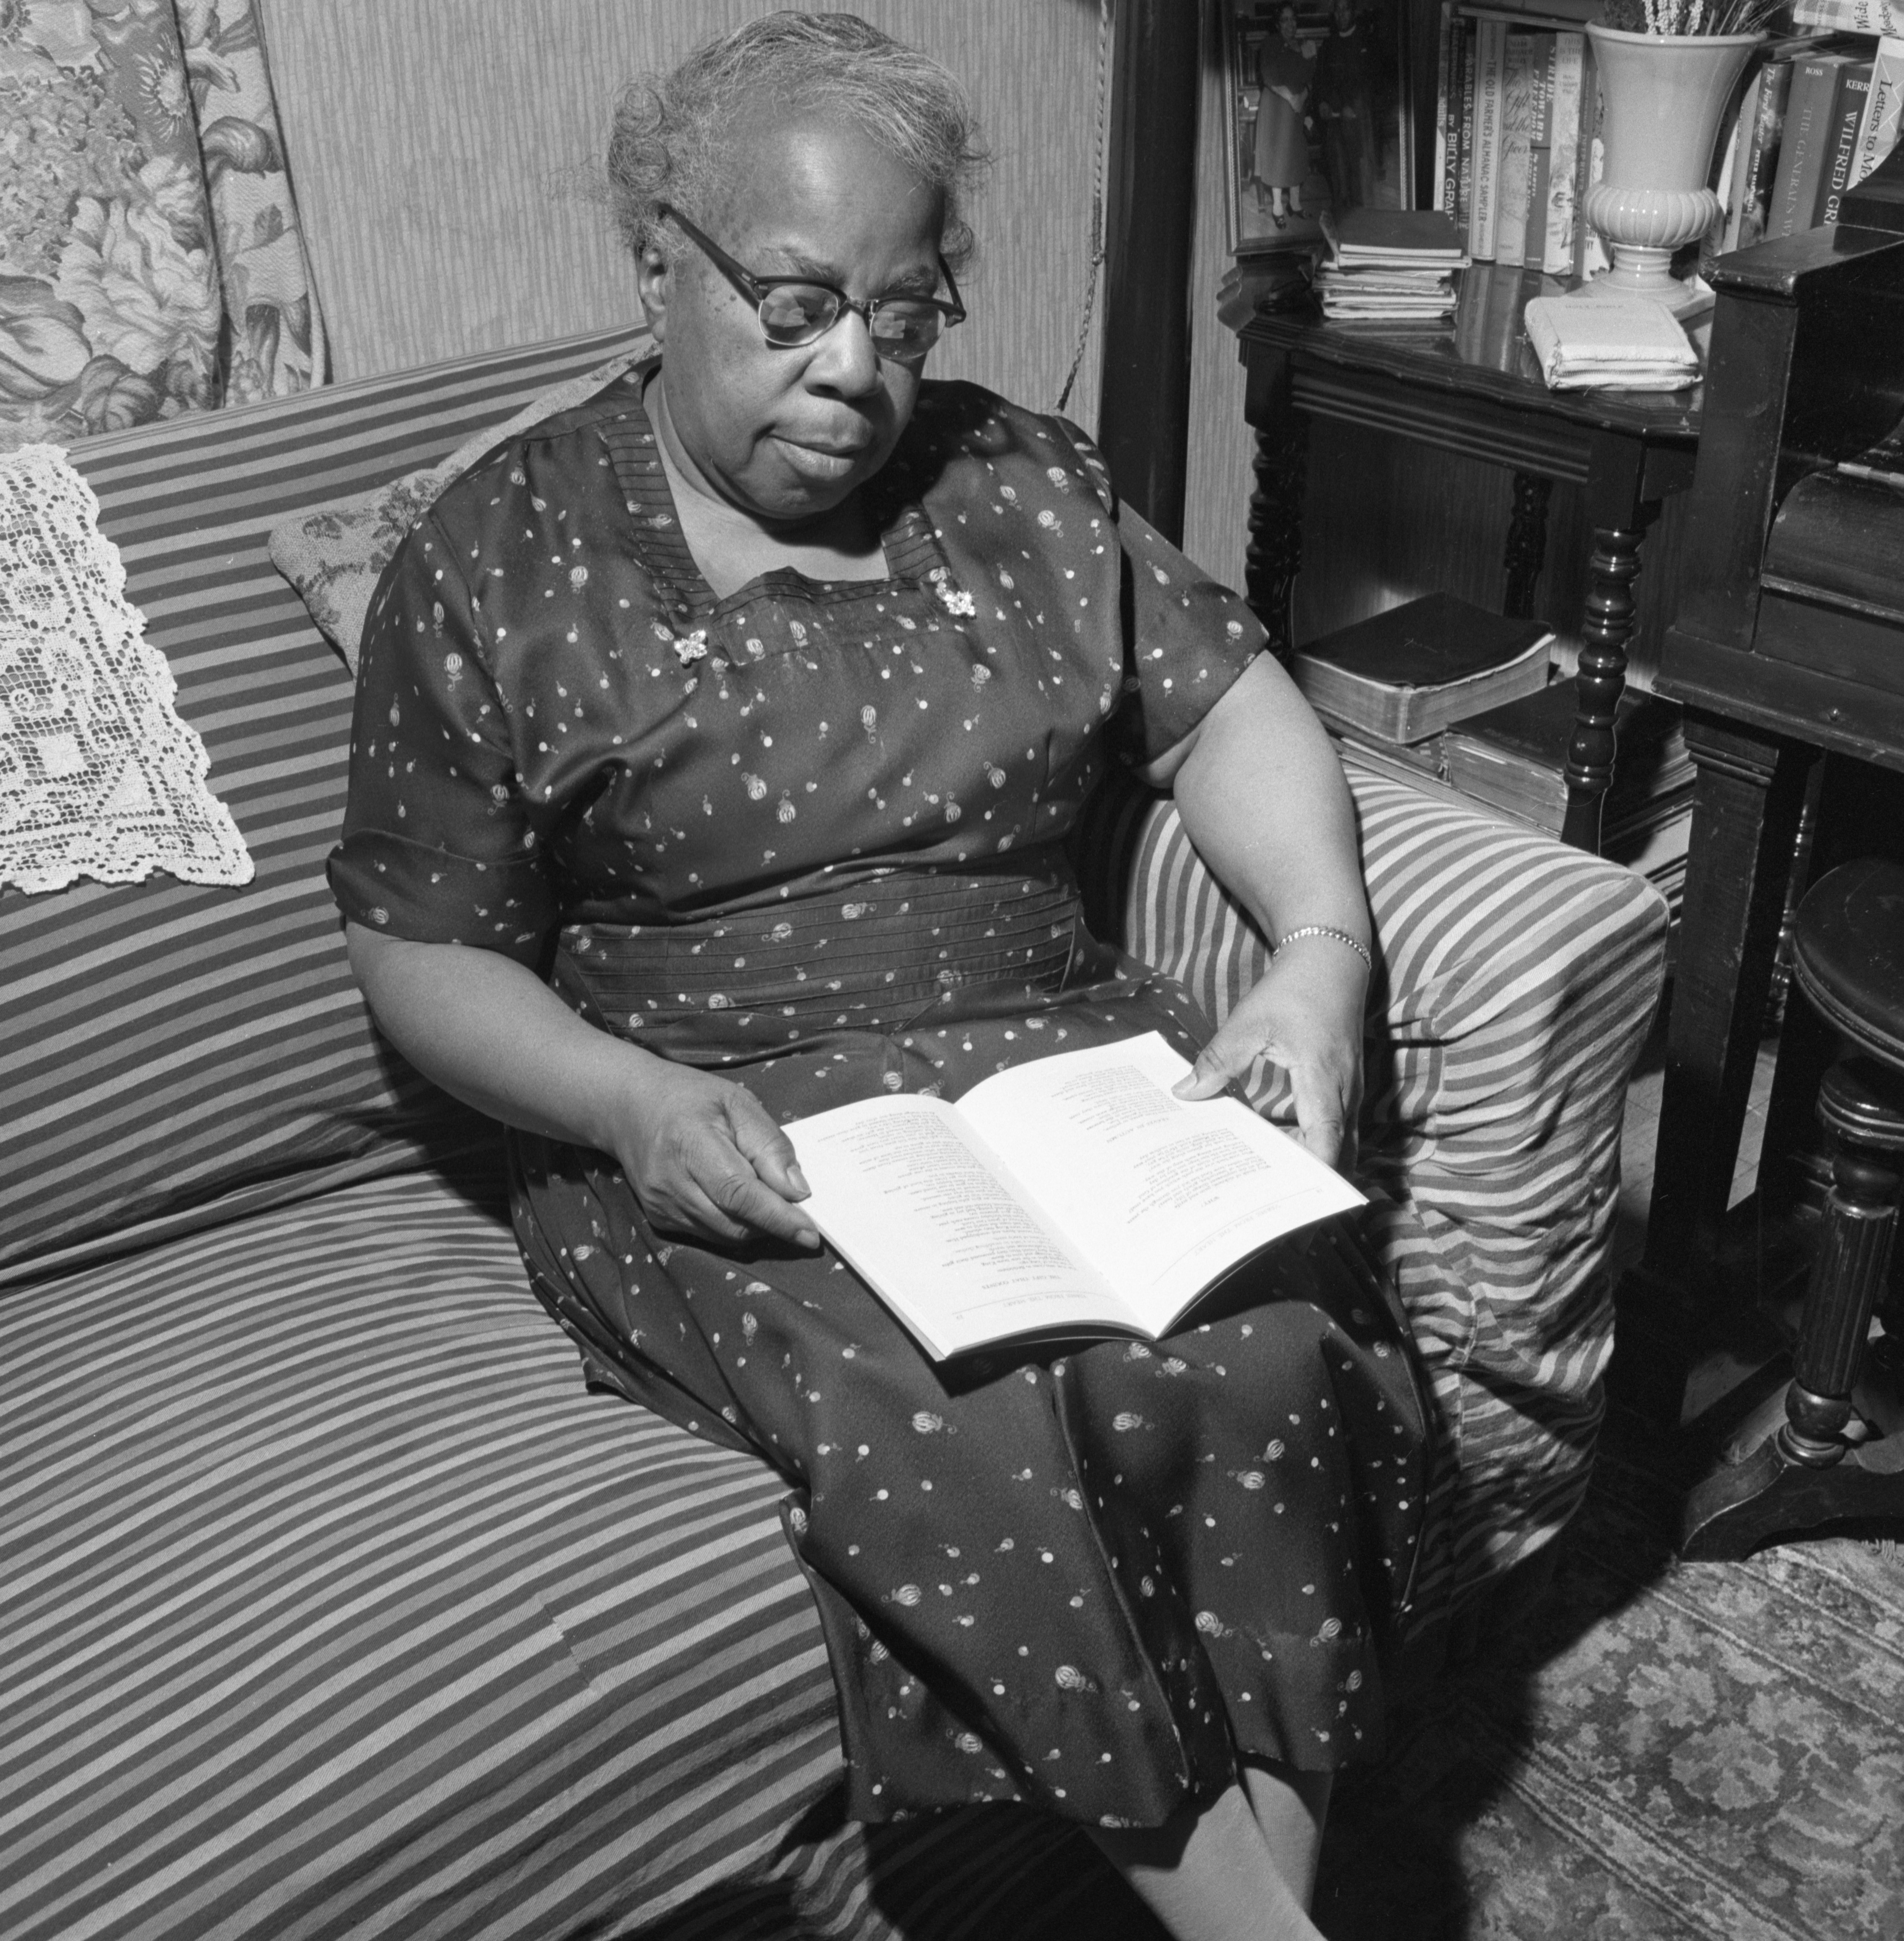 Sylvia Blake Bynum, Poet, Reads From A Book Of Her Work, April 1961 image